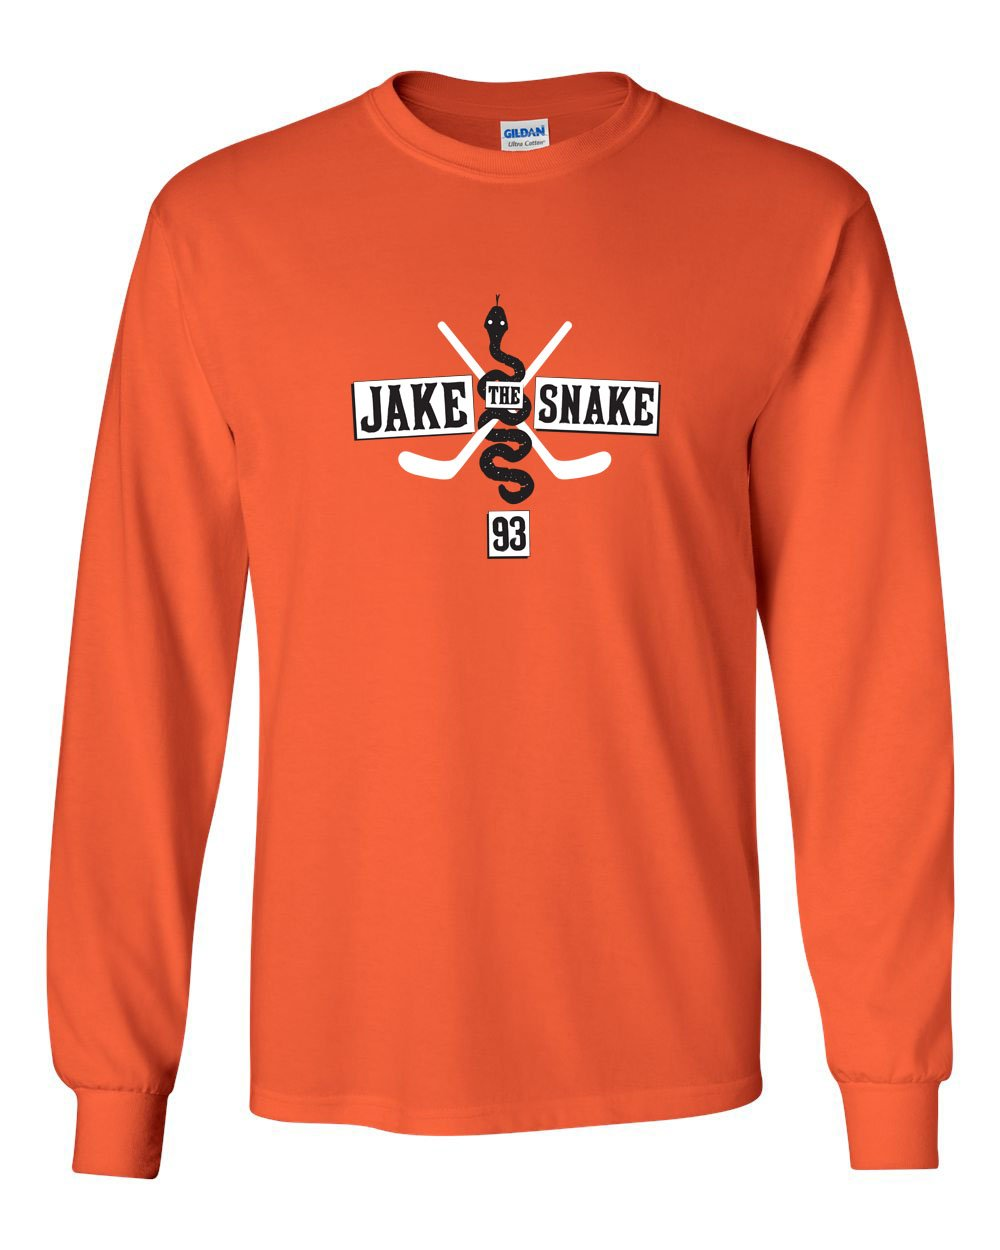 Jake The Snake MENS Long Sleeve Heavy Cotton T-Shirt